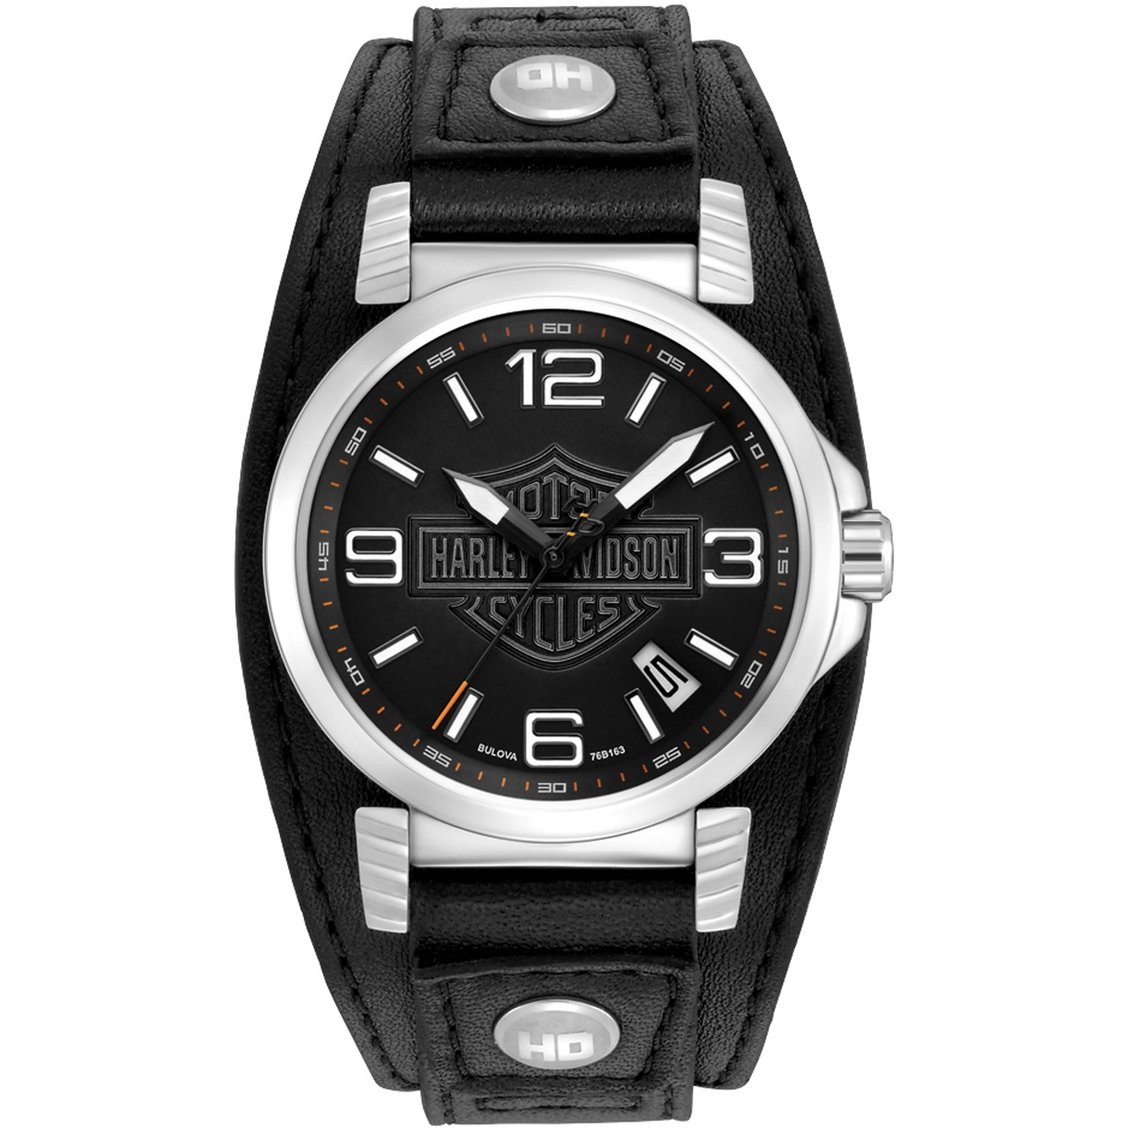 harley davidson by bulova men s watch 76b163 leather band 1007